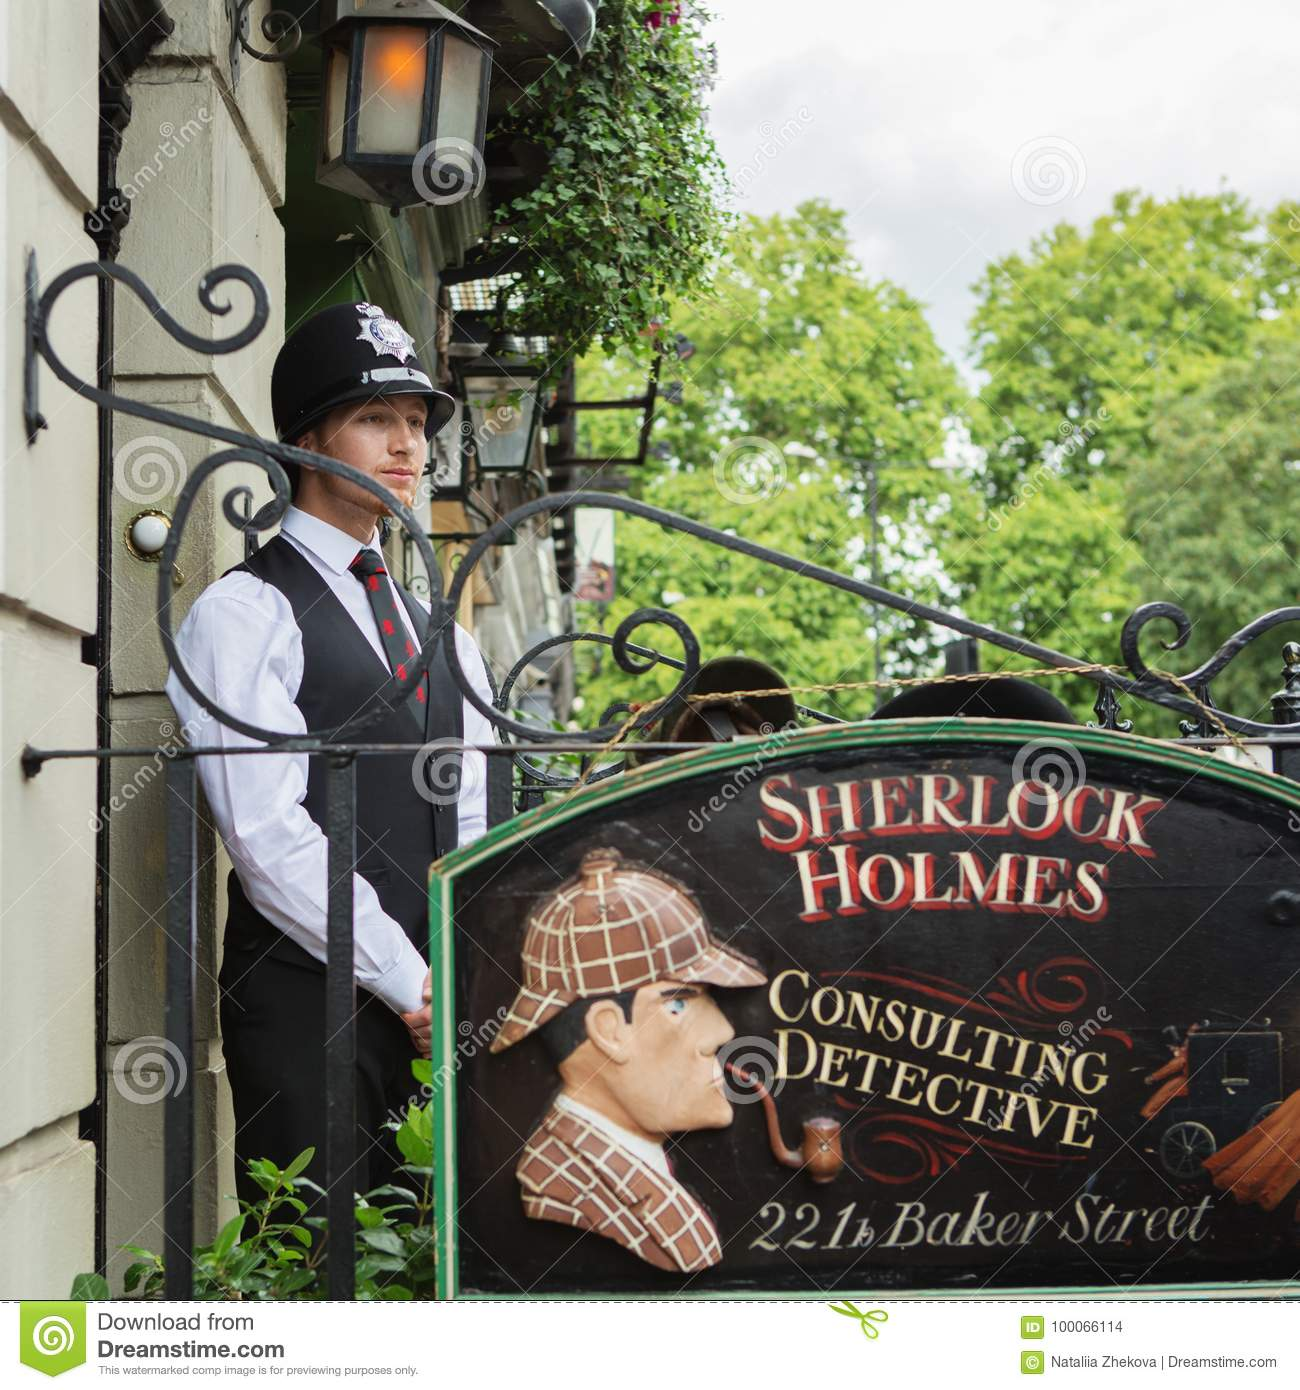 LONDON - AUGUST 24, 2017: The Sherlock Holmes museum is located